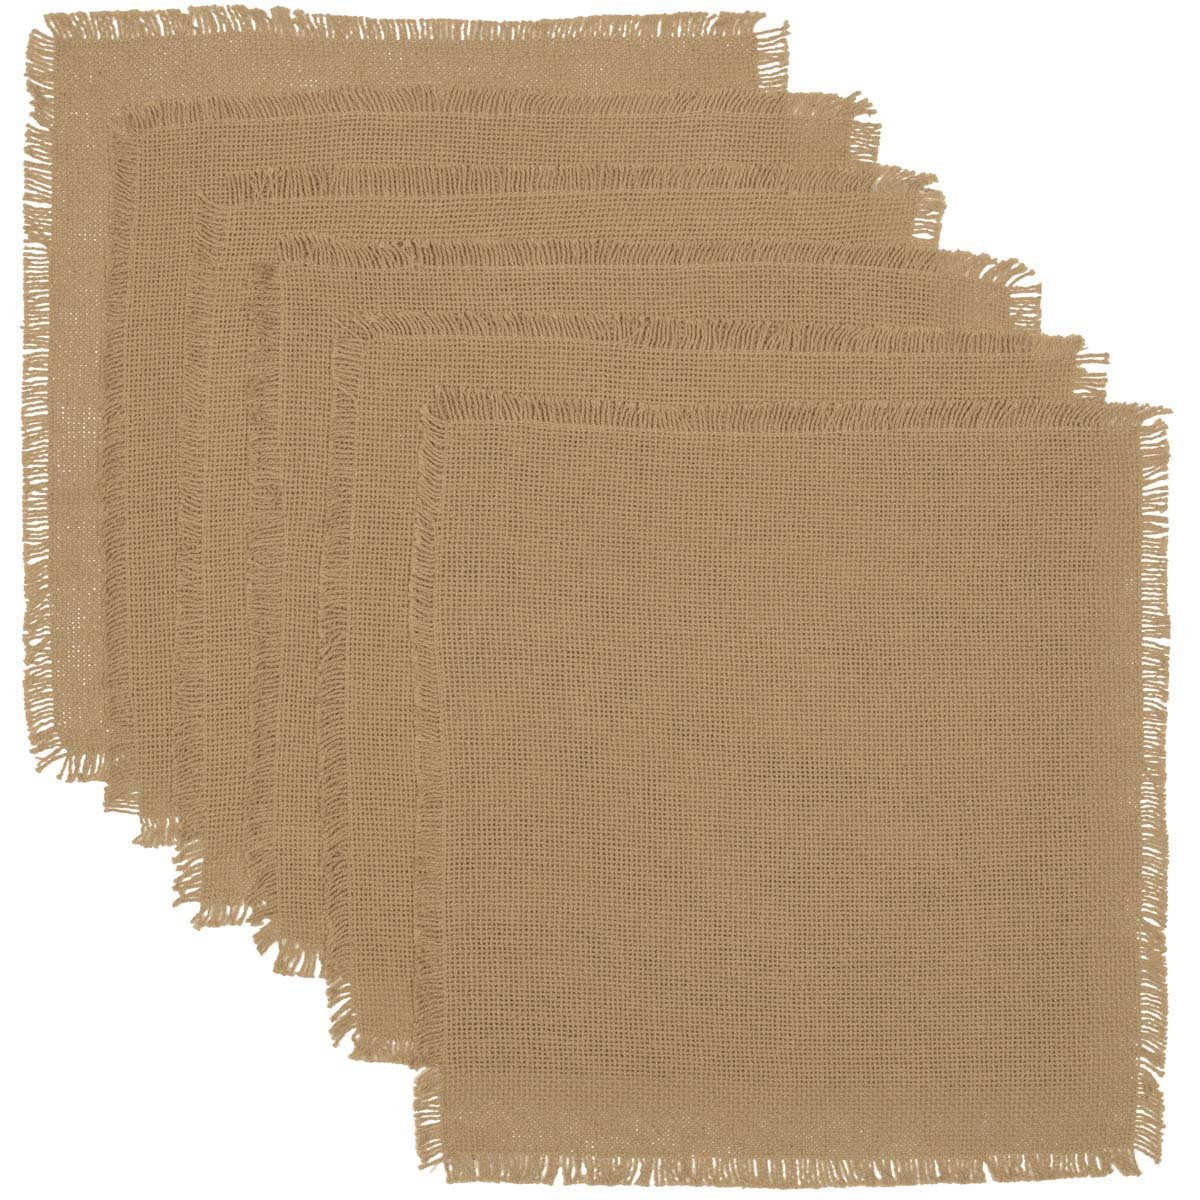 VHC Brands Classic Country Farmhouse Tabletop & Kitchen-Burlap Natural Tan Fringed Tablemat Set of 6, 13'' x 13'' by VHC Brands